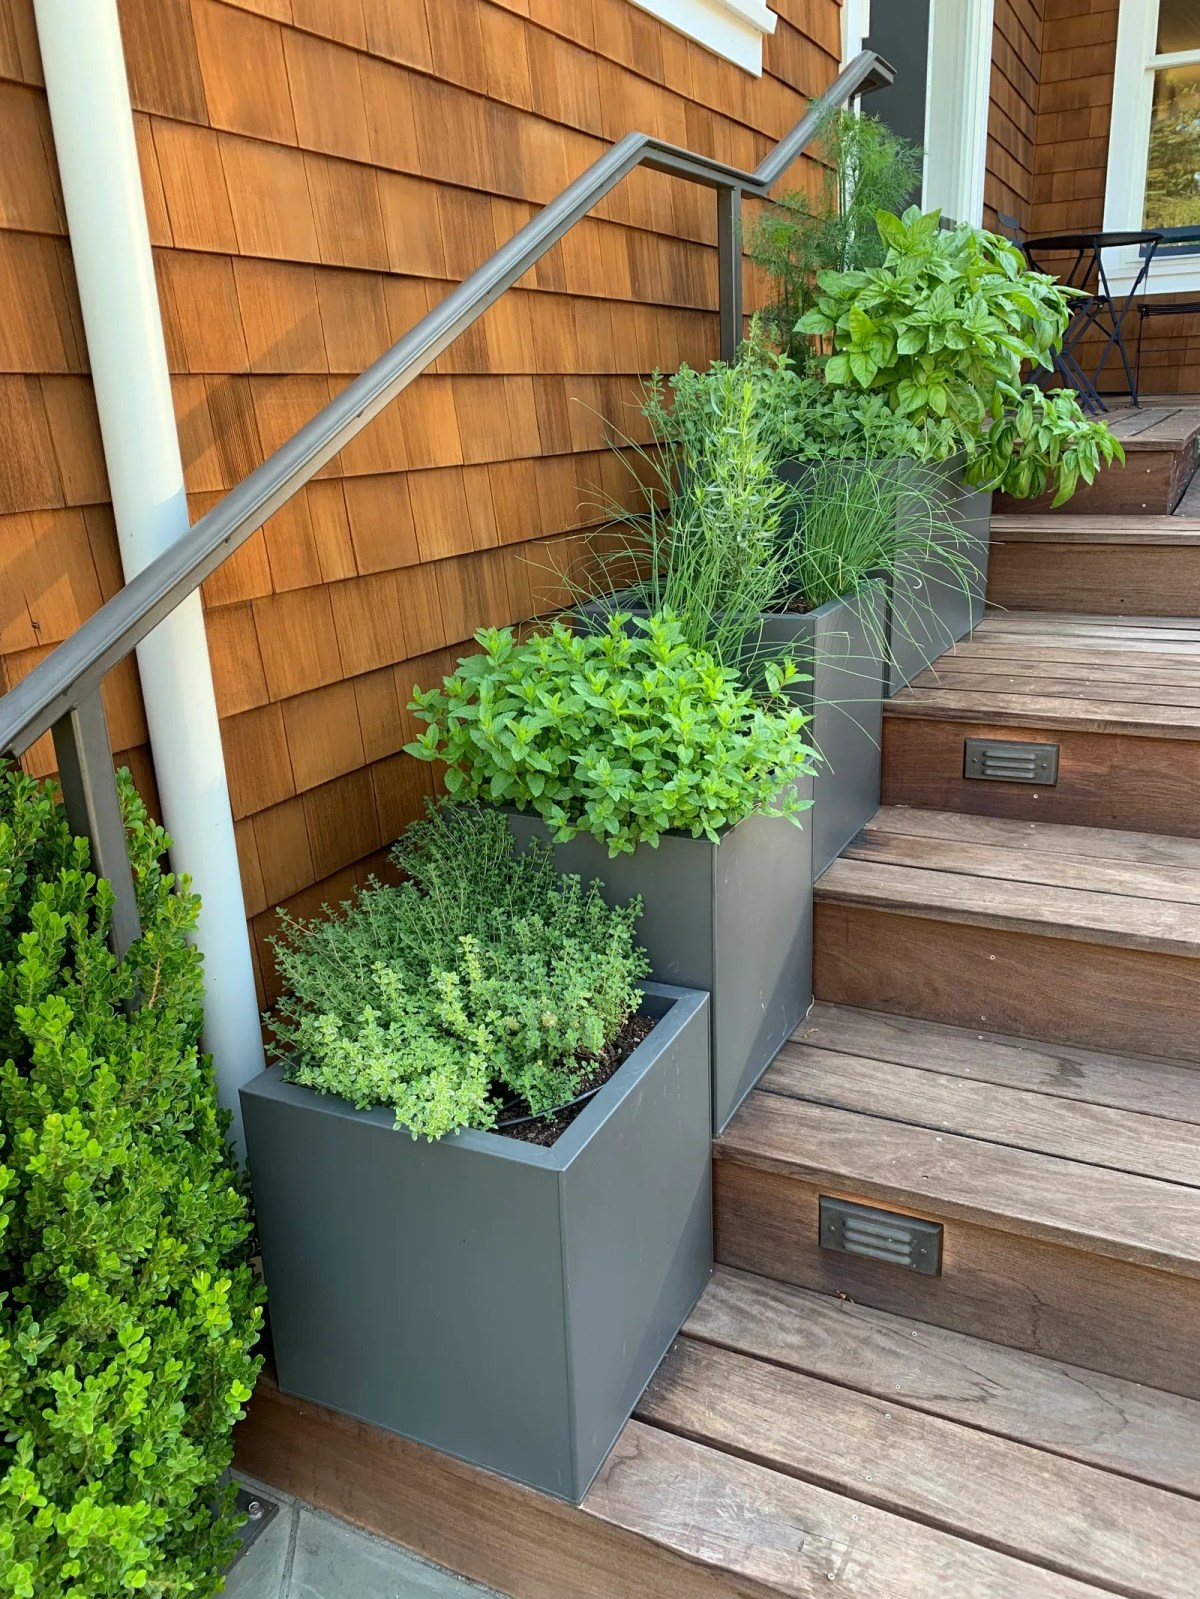 Herb planters line the steps of this decka perfect solution for growing food in a small space close to the kitchen.